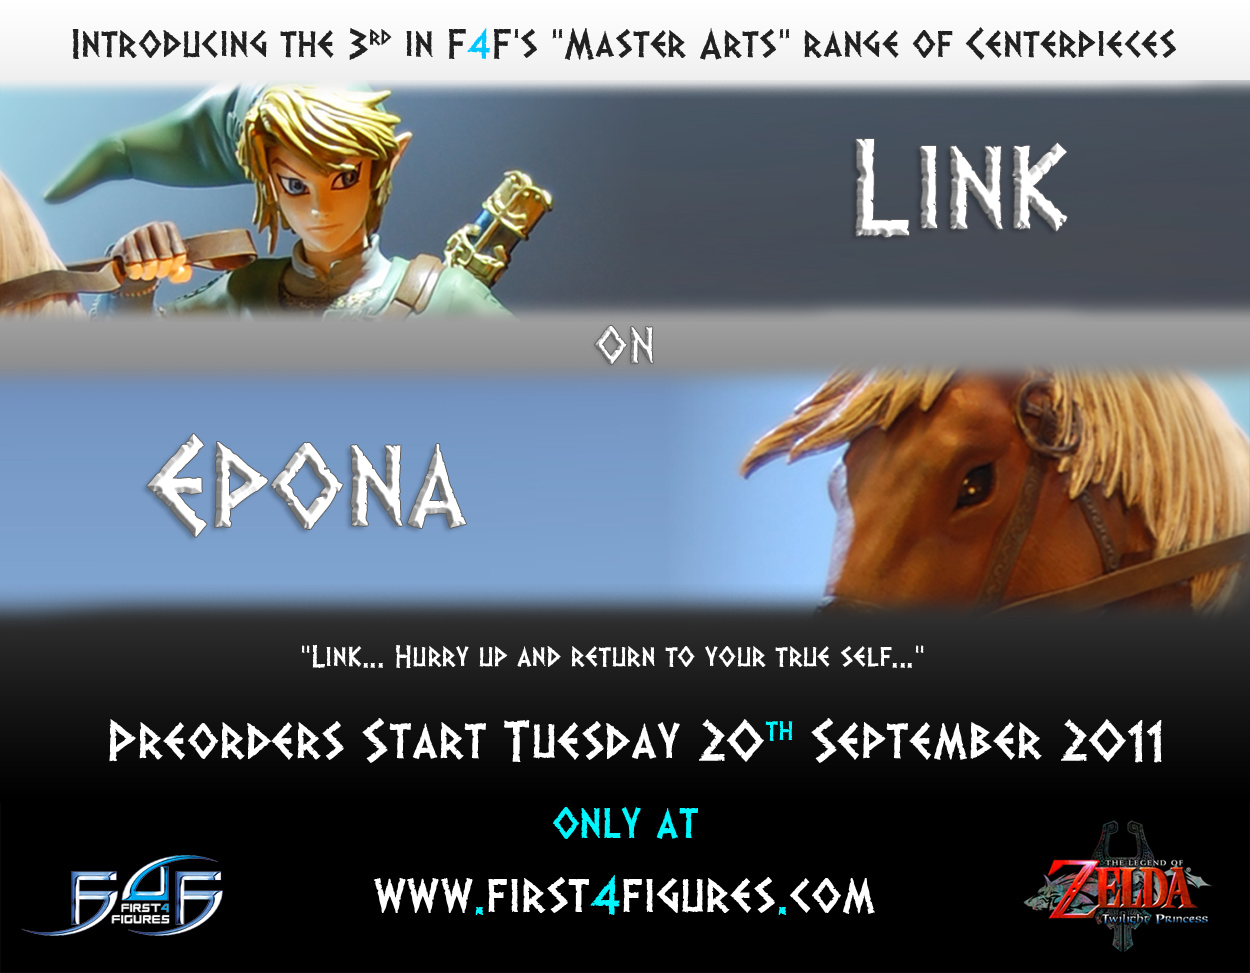 Zelda Quotes First 4 Figures Link On Epona  Zelda Dungeon